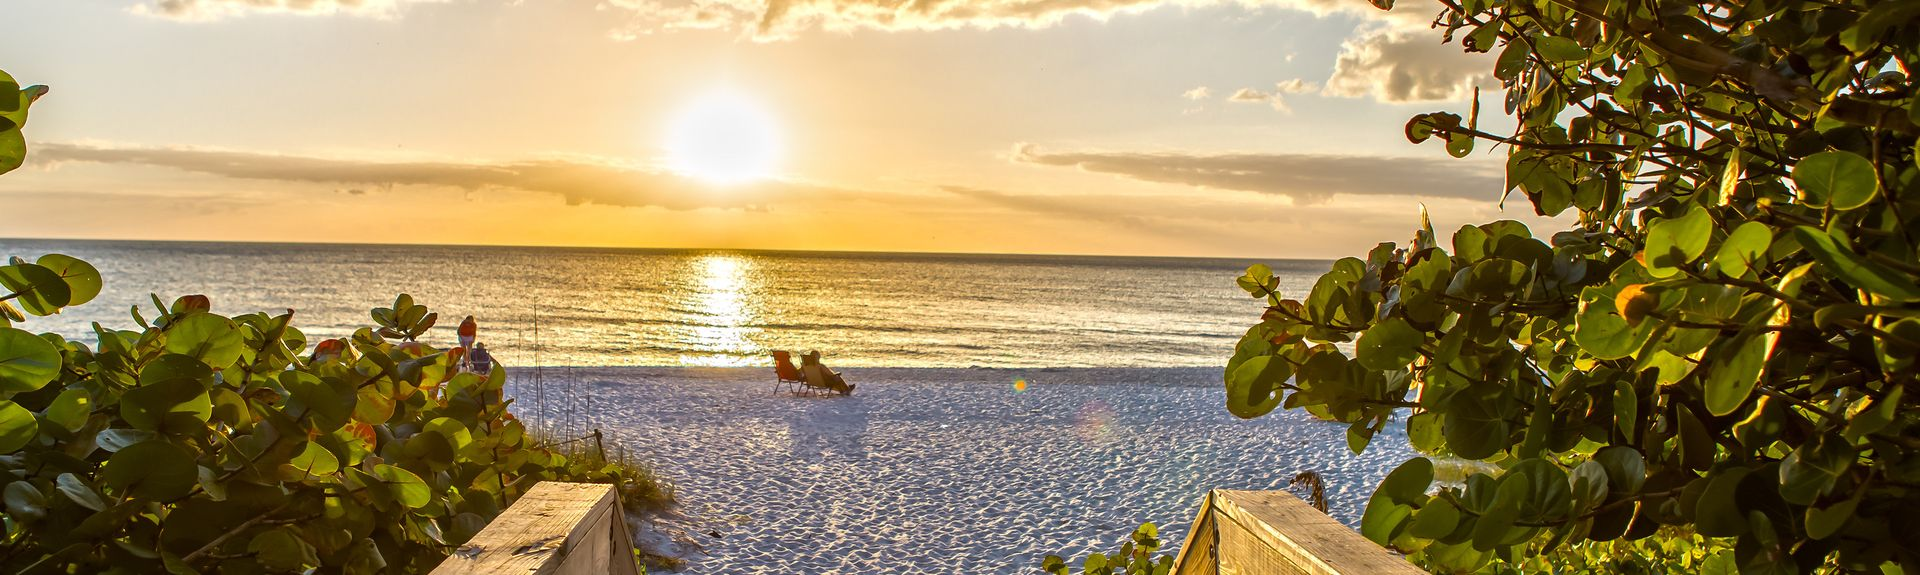 Naples Beach, Naples, Florida, United States of America